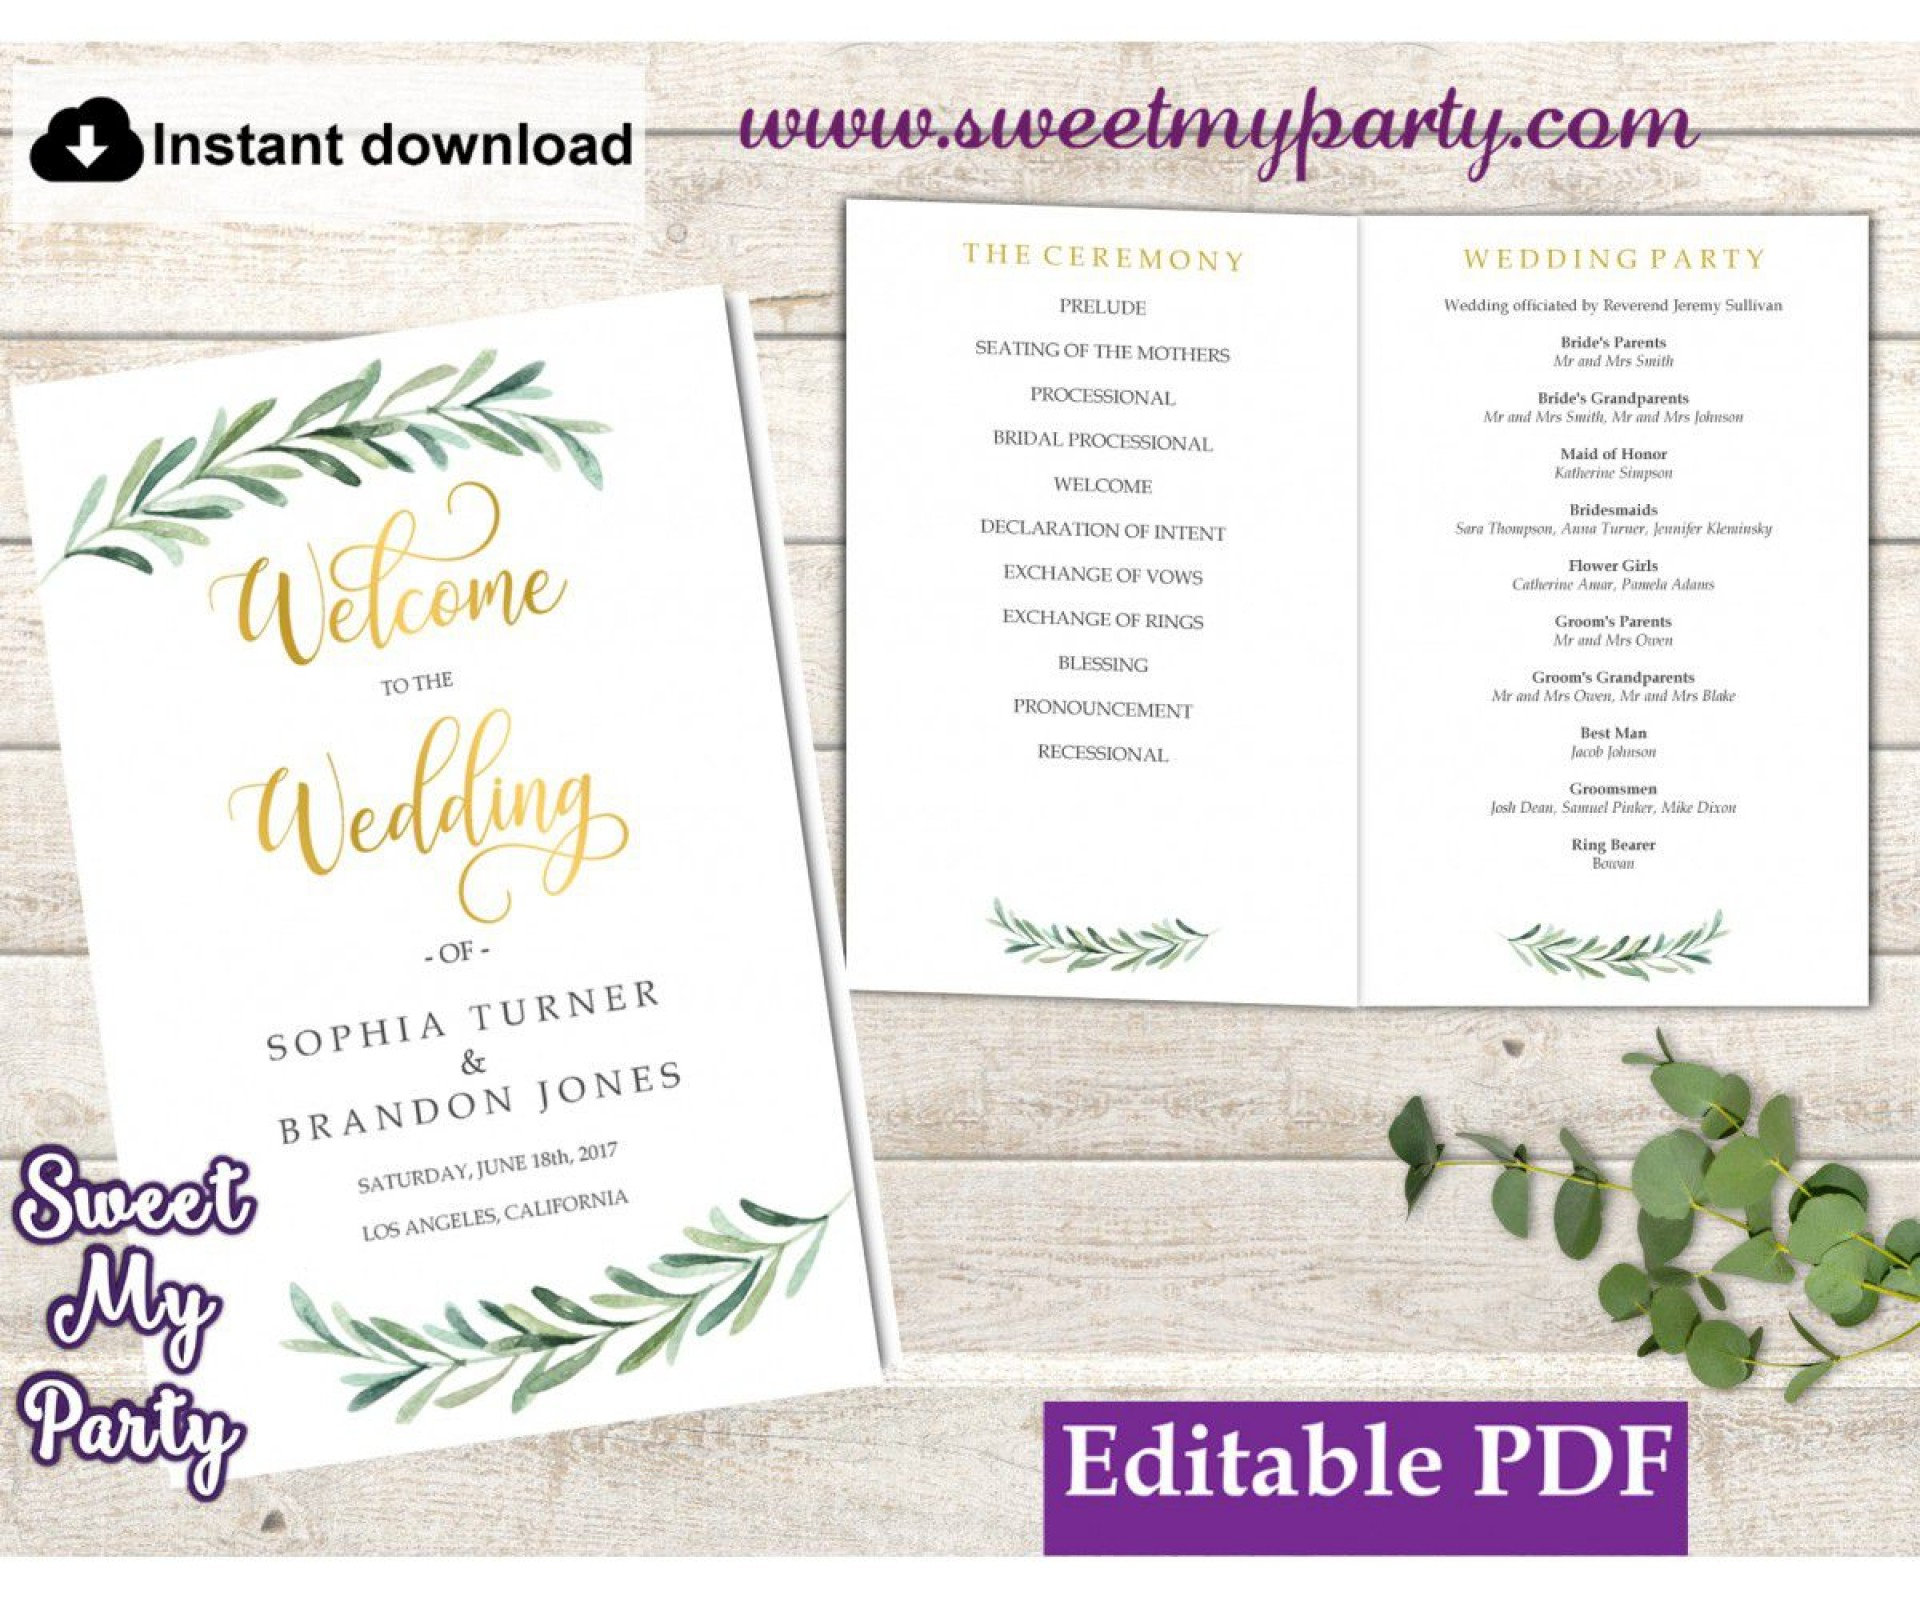 003 Outstanding Wedding Order Of Service Template Sample  Pdf Publisher Microsoft Word1920